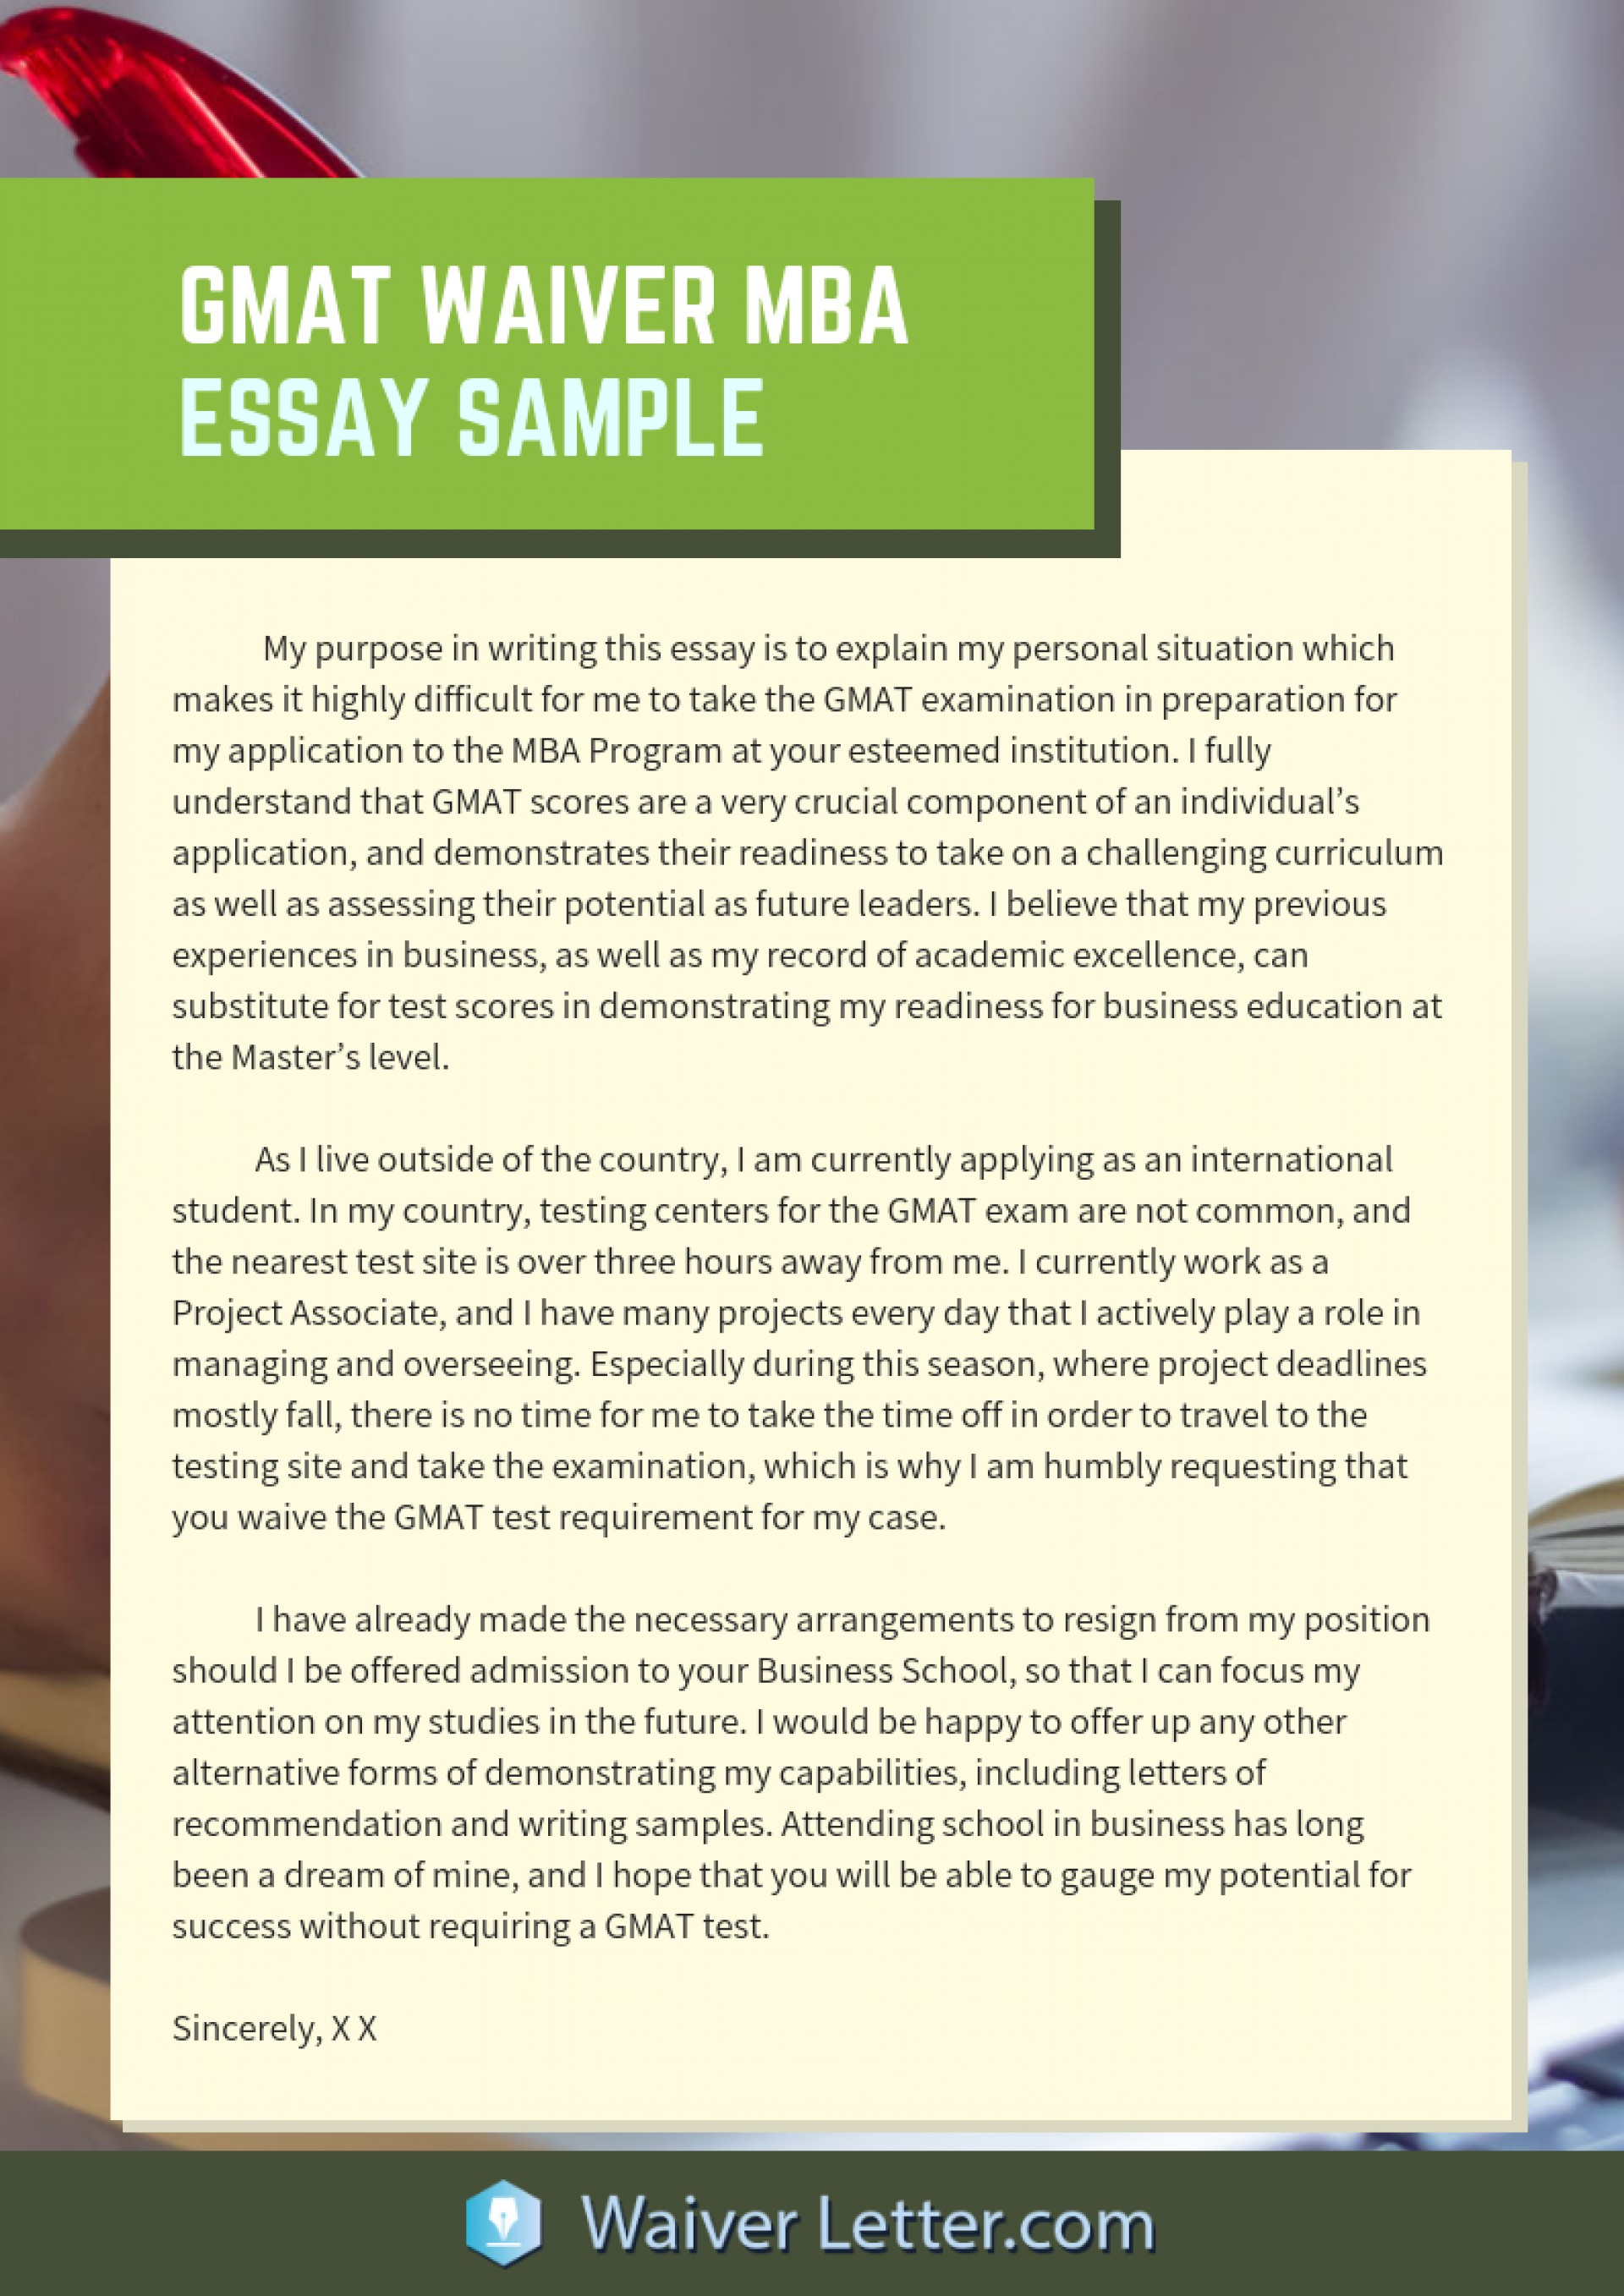 012 Essay Example Gmat Waiver Mba Shocking Sample Topics Awa Essays Free Download 1920